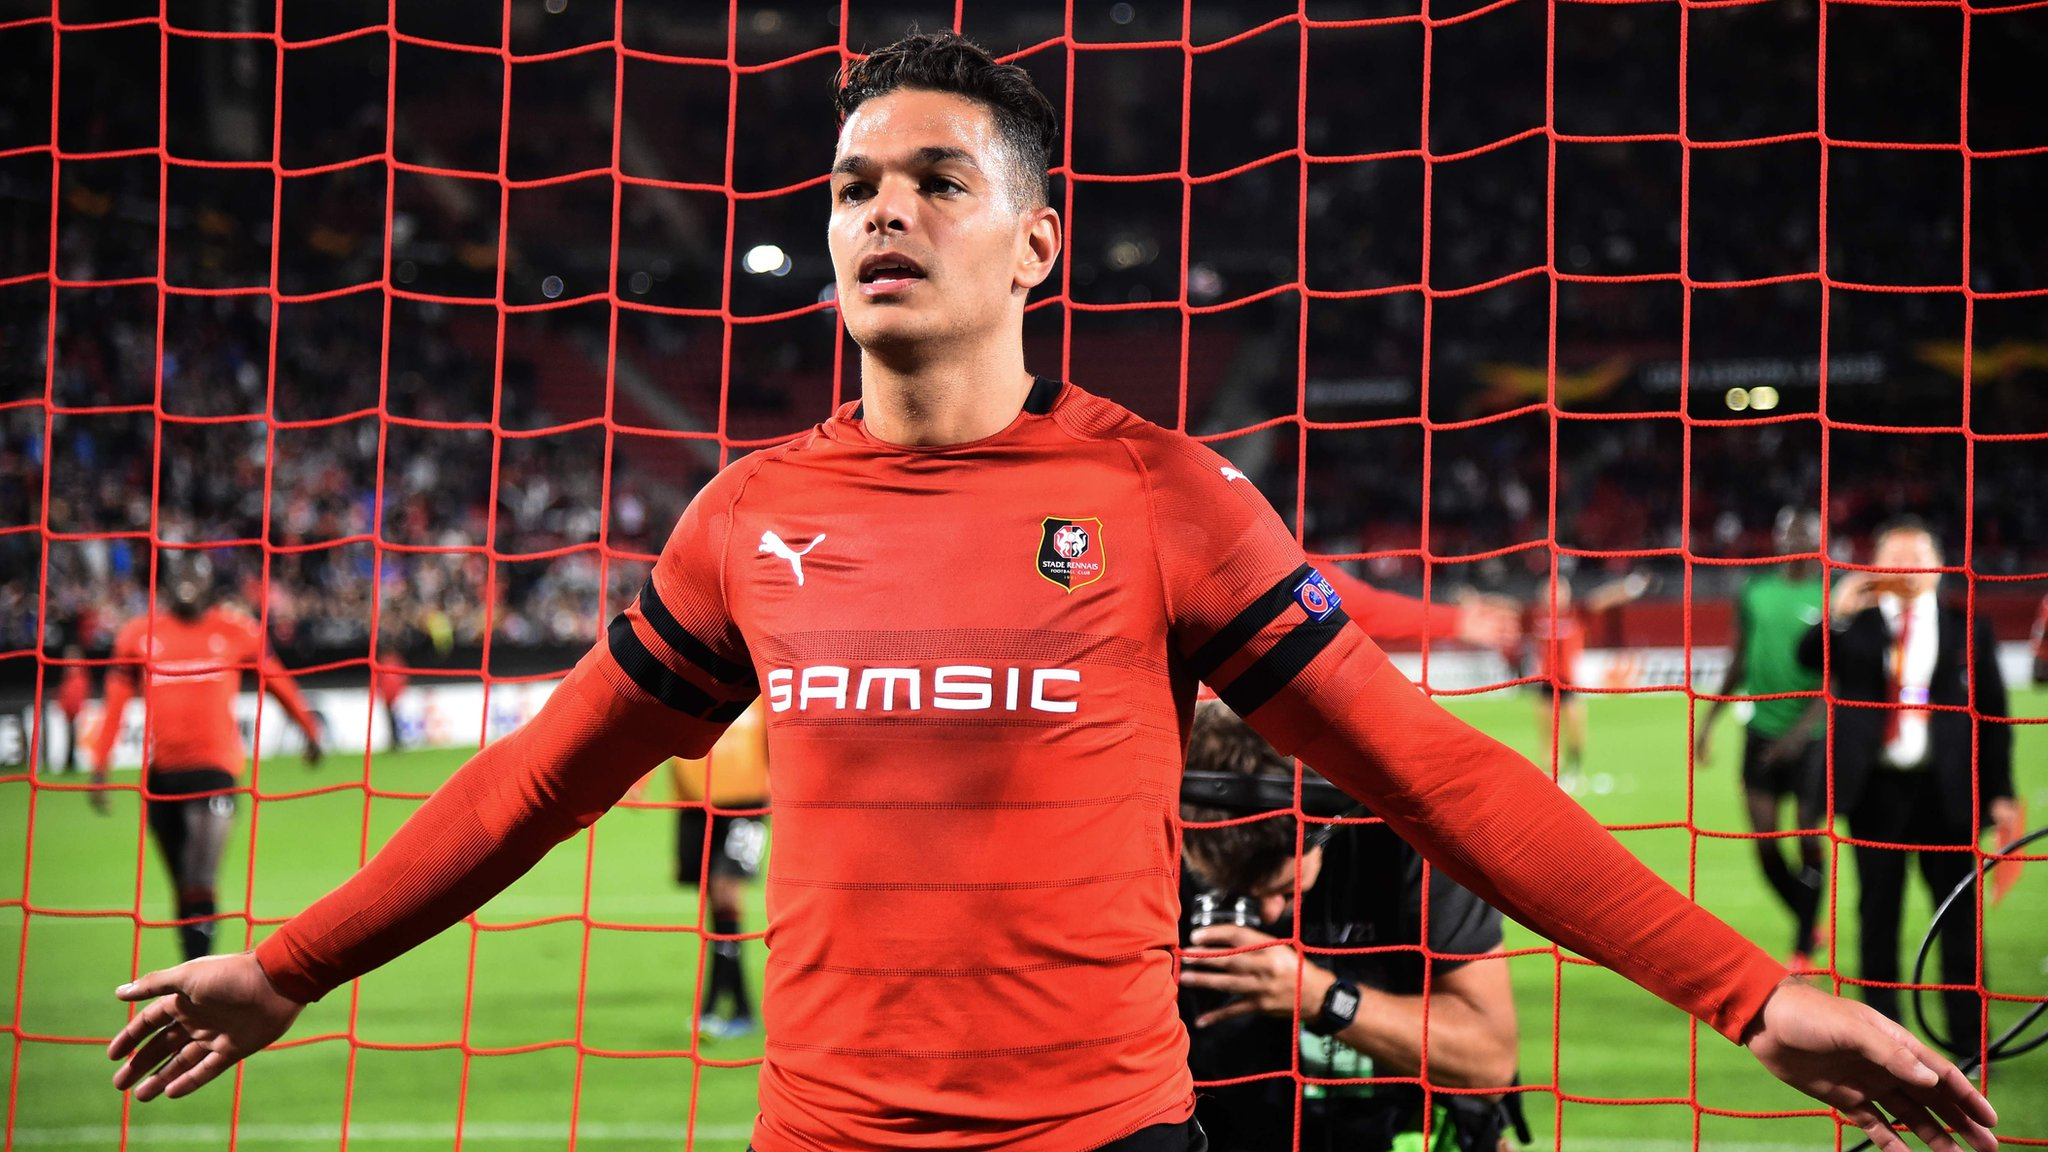 Rennes 2-1 Jablonec: Hatem Ben Arfa scores on return to football